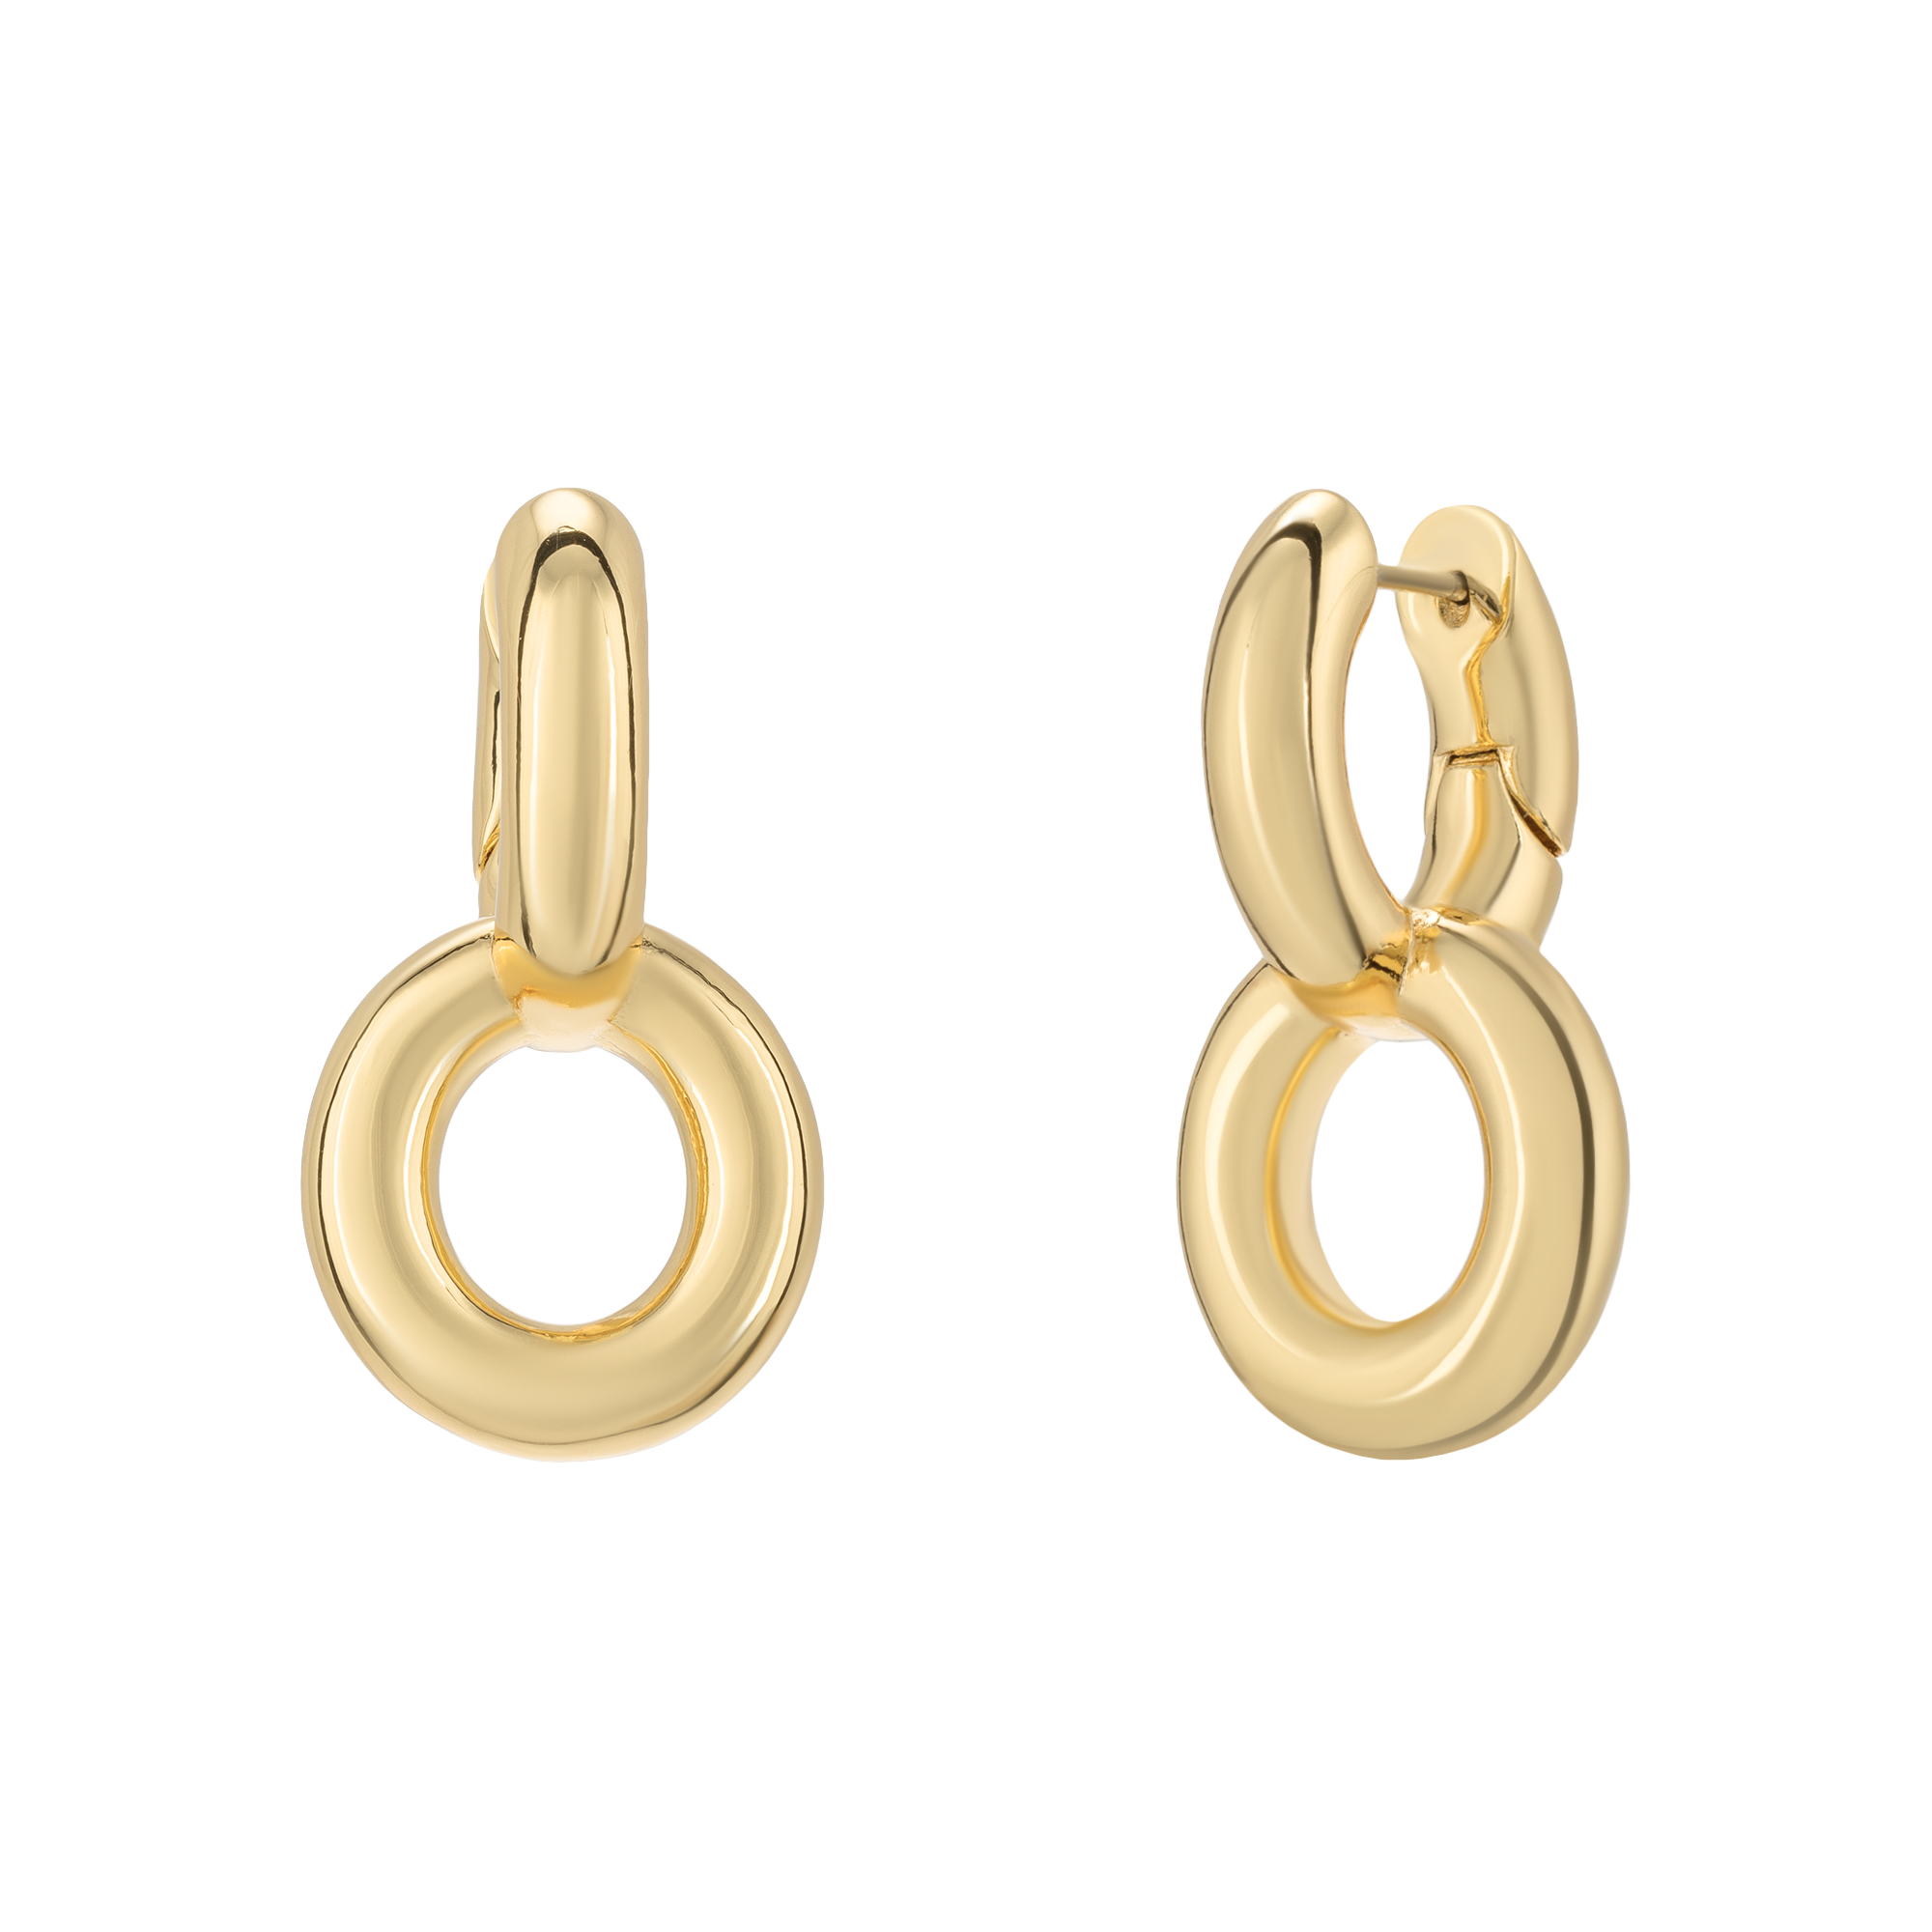 Golden massive earrings product image